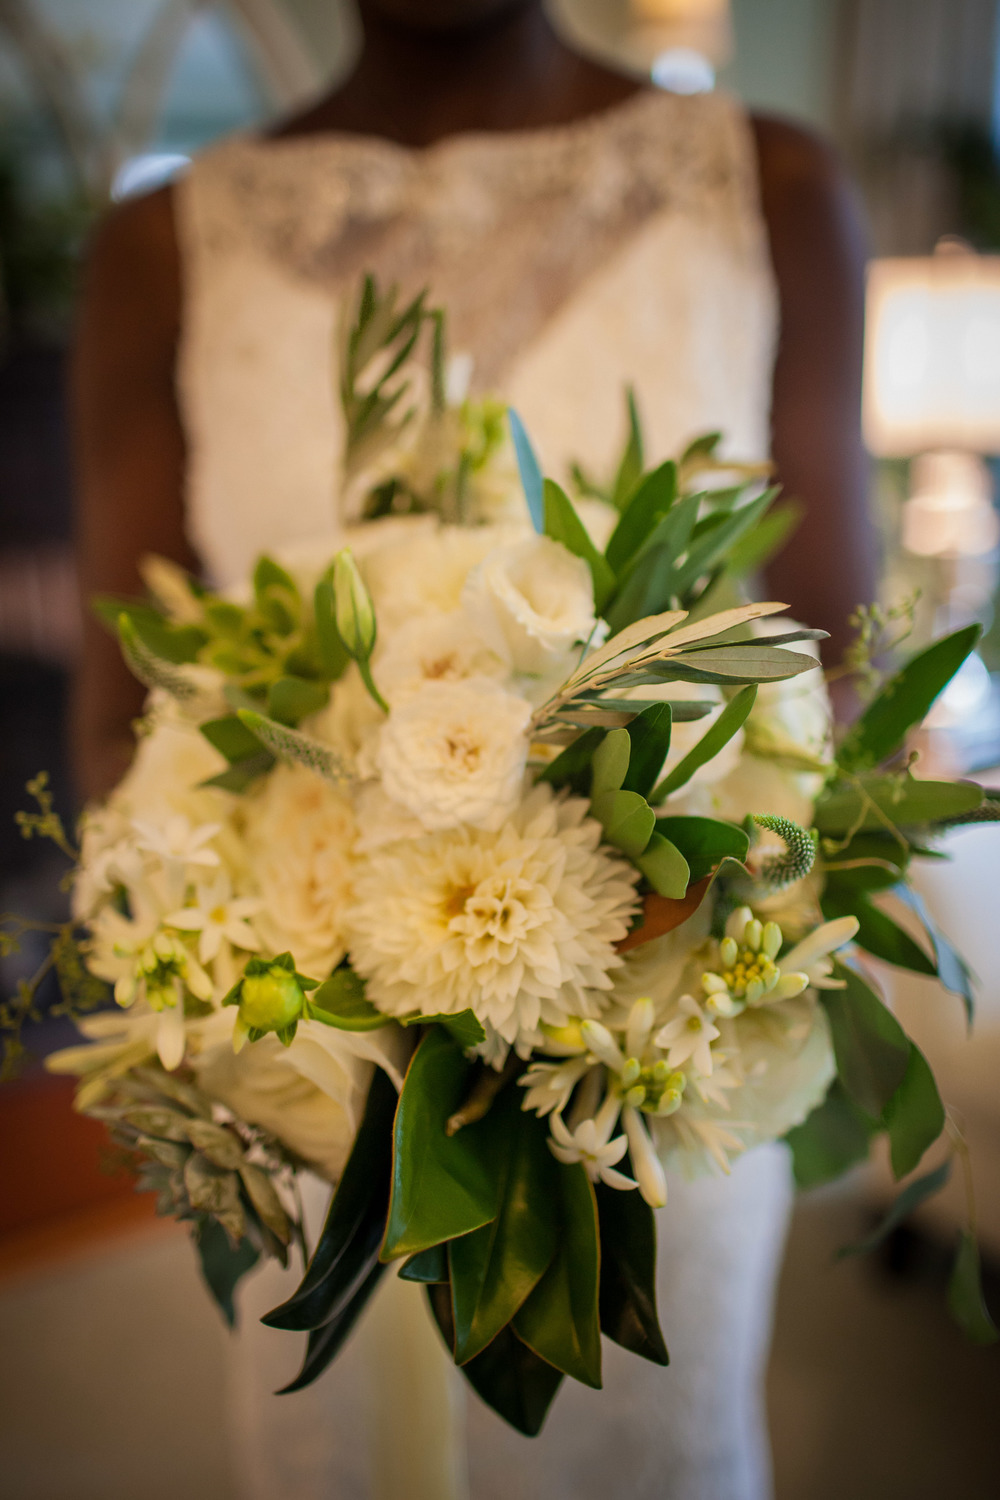 ashley_john-wedding-080815-169.jpg